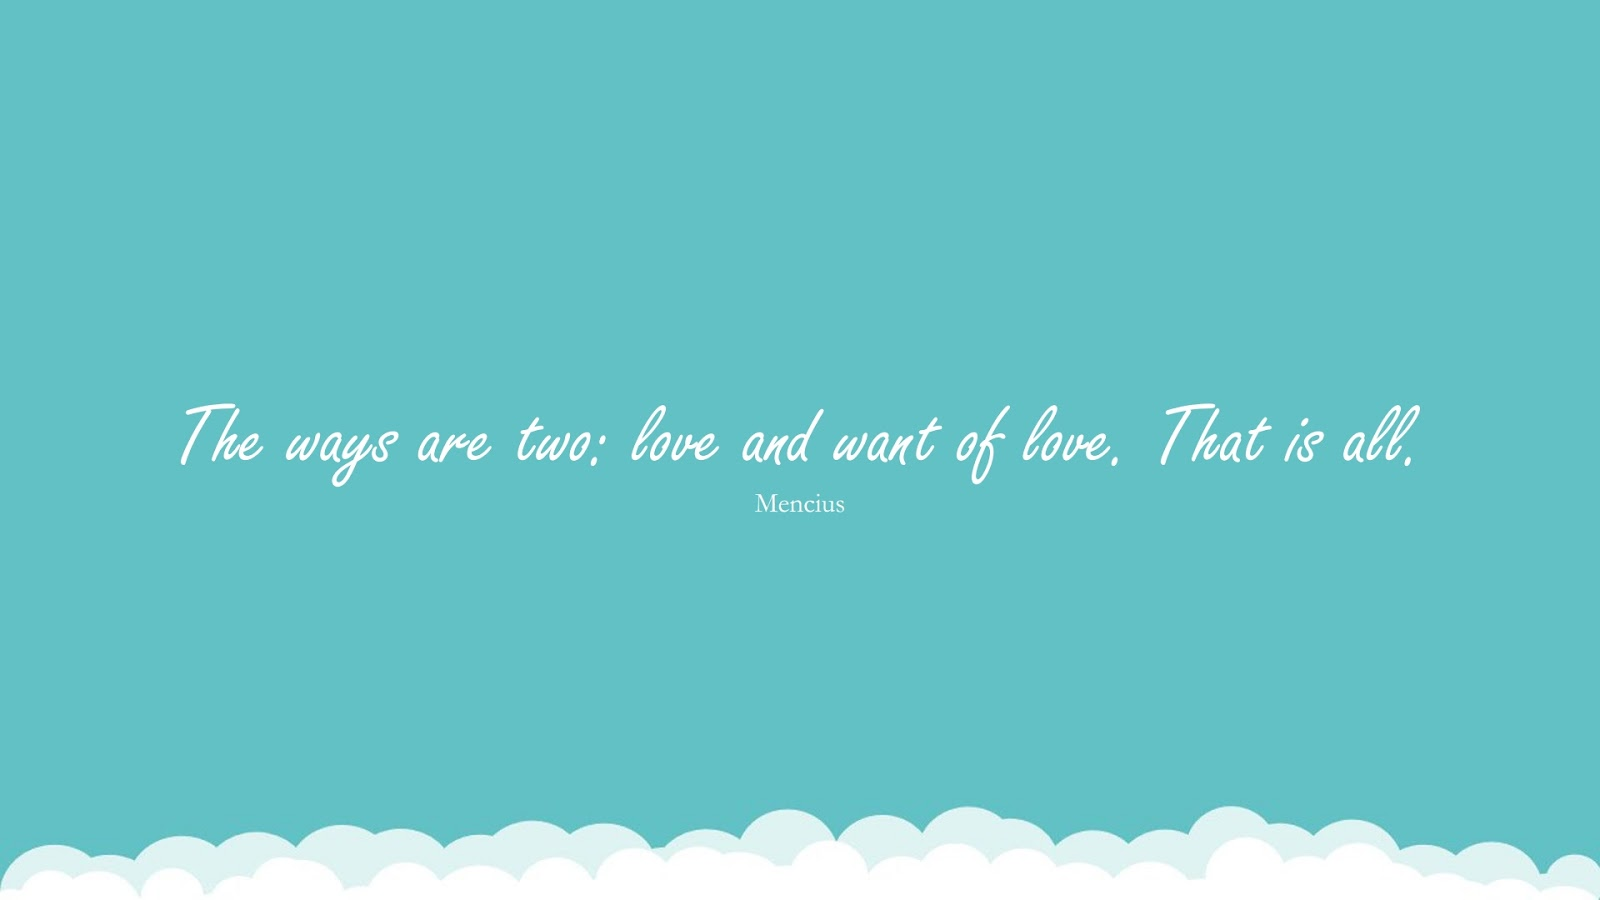 The ways are two: love and want of love. That is all. (Mencius);  #LoveQuotes